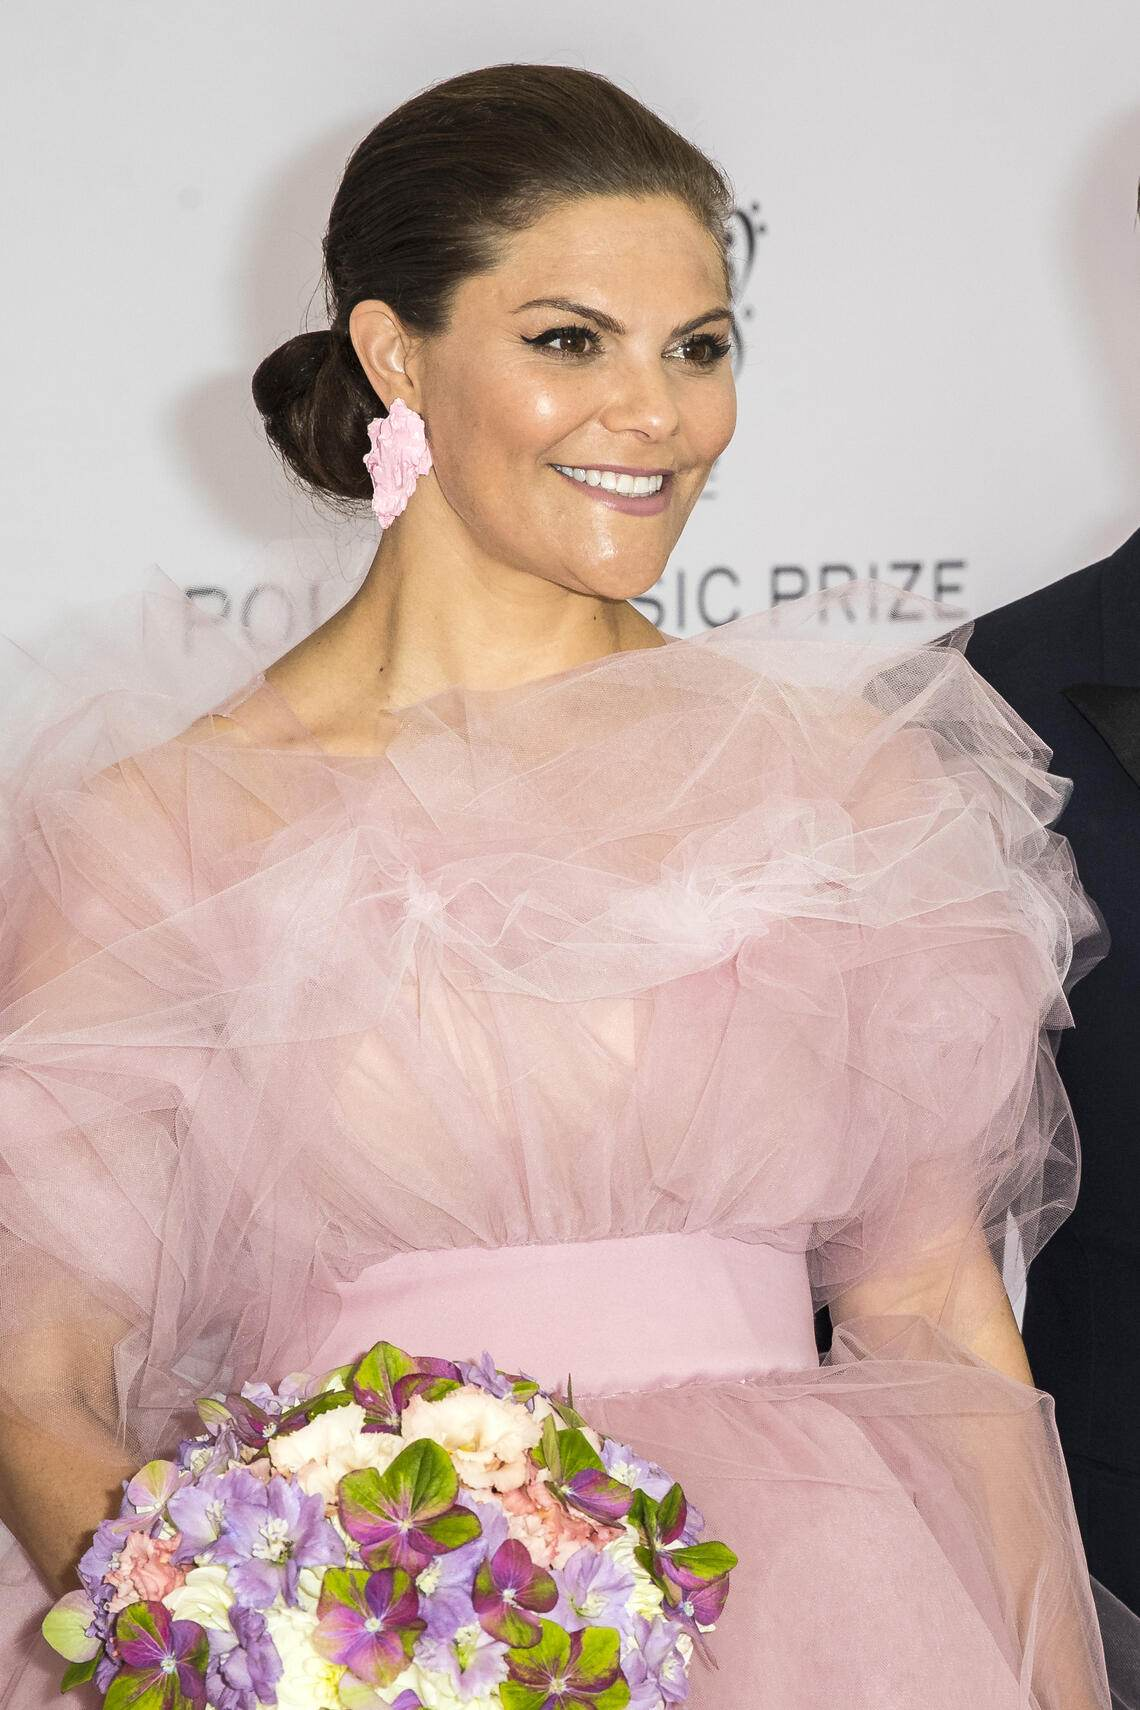 STOCKHOLM, SWEDEN - JUNE 11: Crown Princess Victoria of Sweden poses on the red carpet during the 2019 Polar Music Prize award ceremony  on June 11, 2019 in Stockholm, Sweden. (Photo by Michael Campanella/Getty Images)